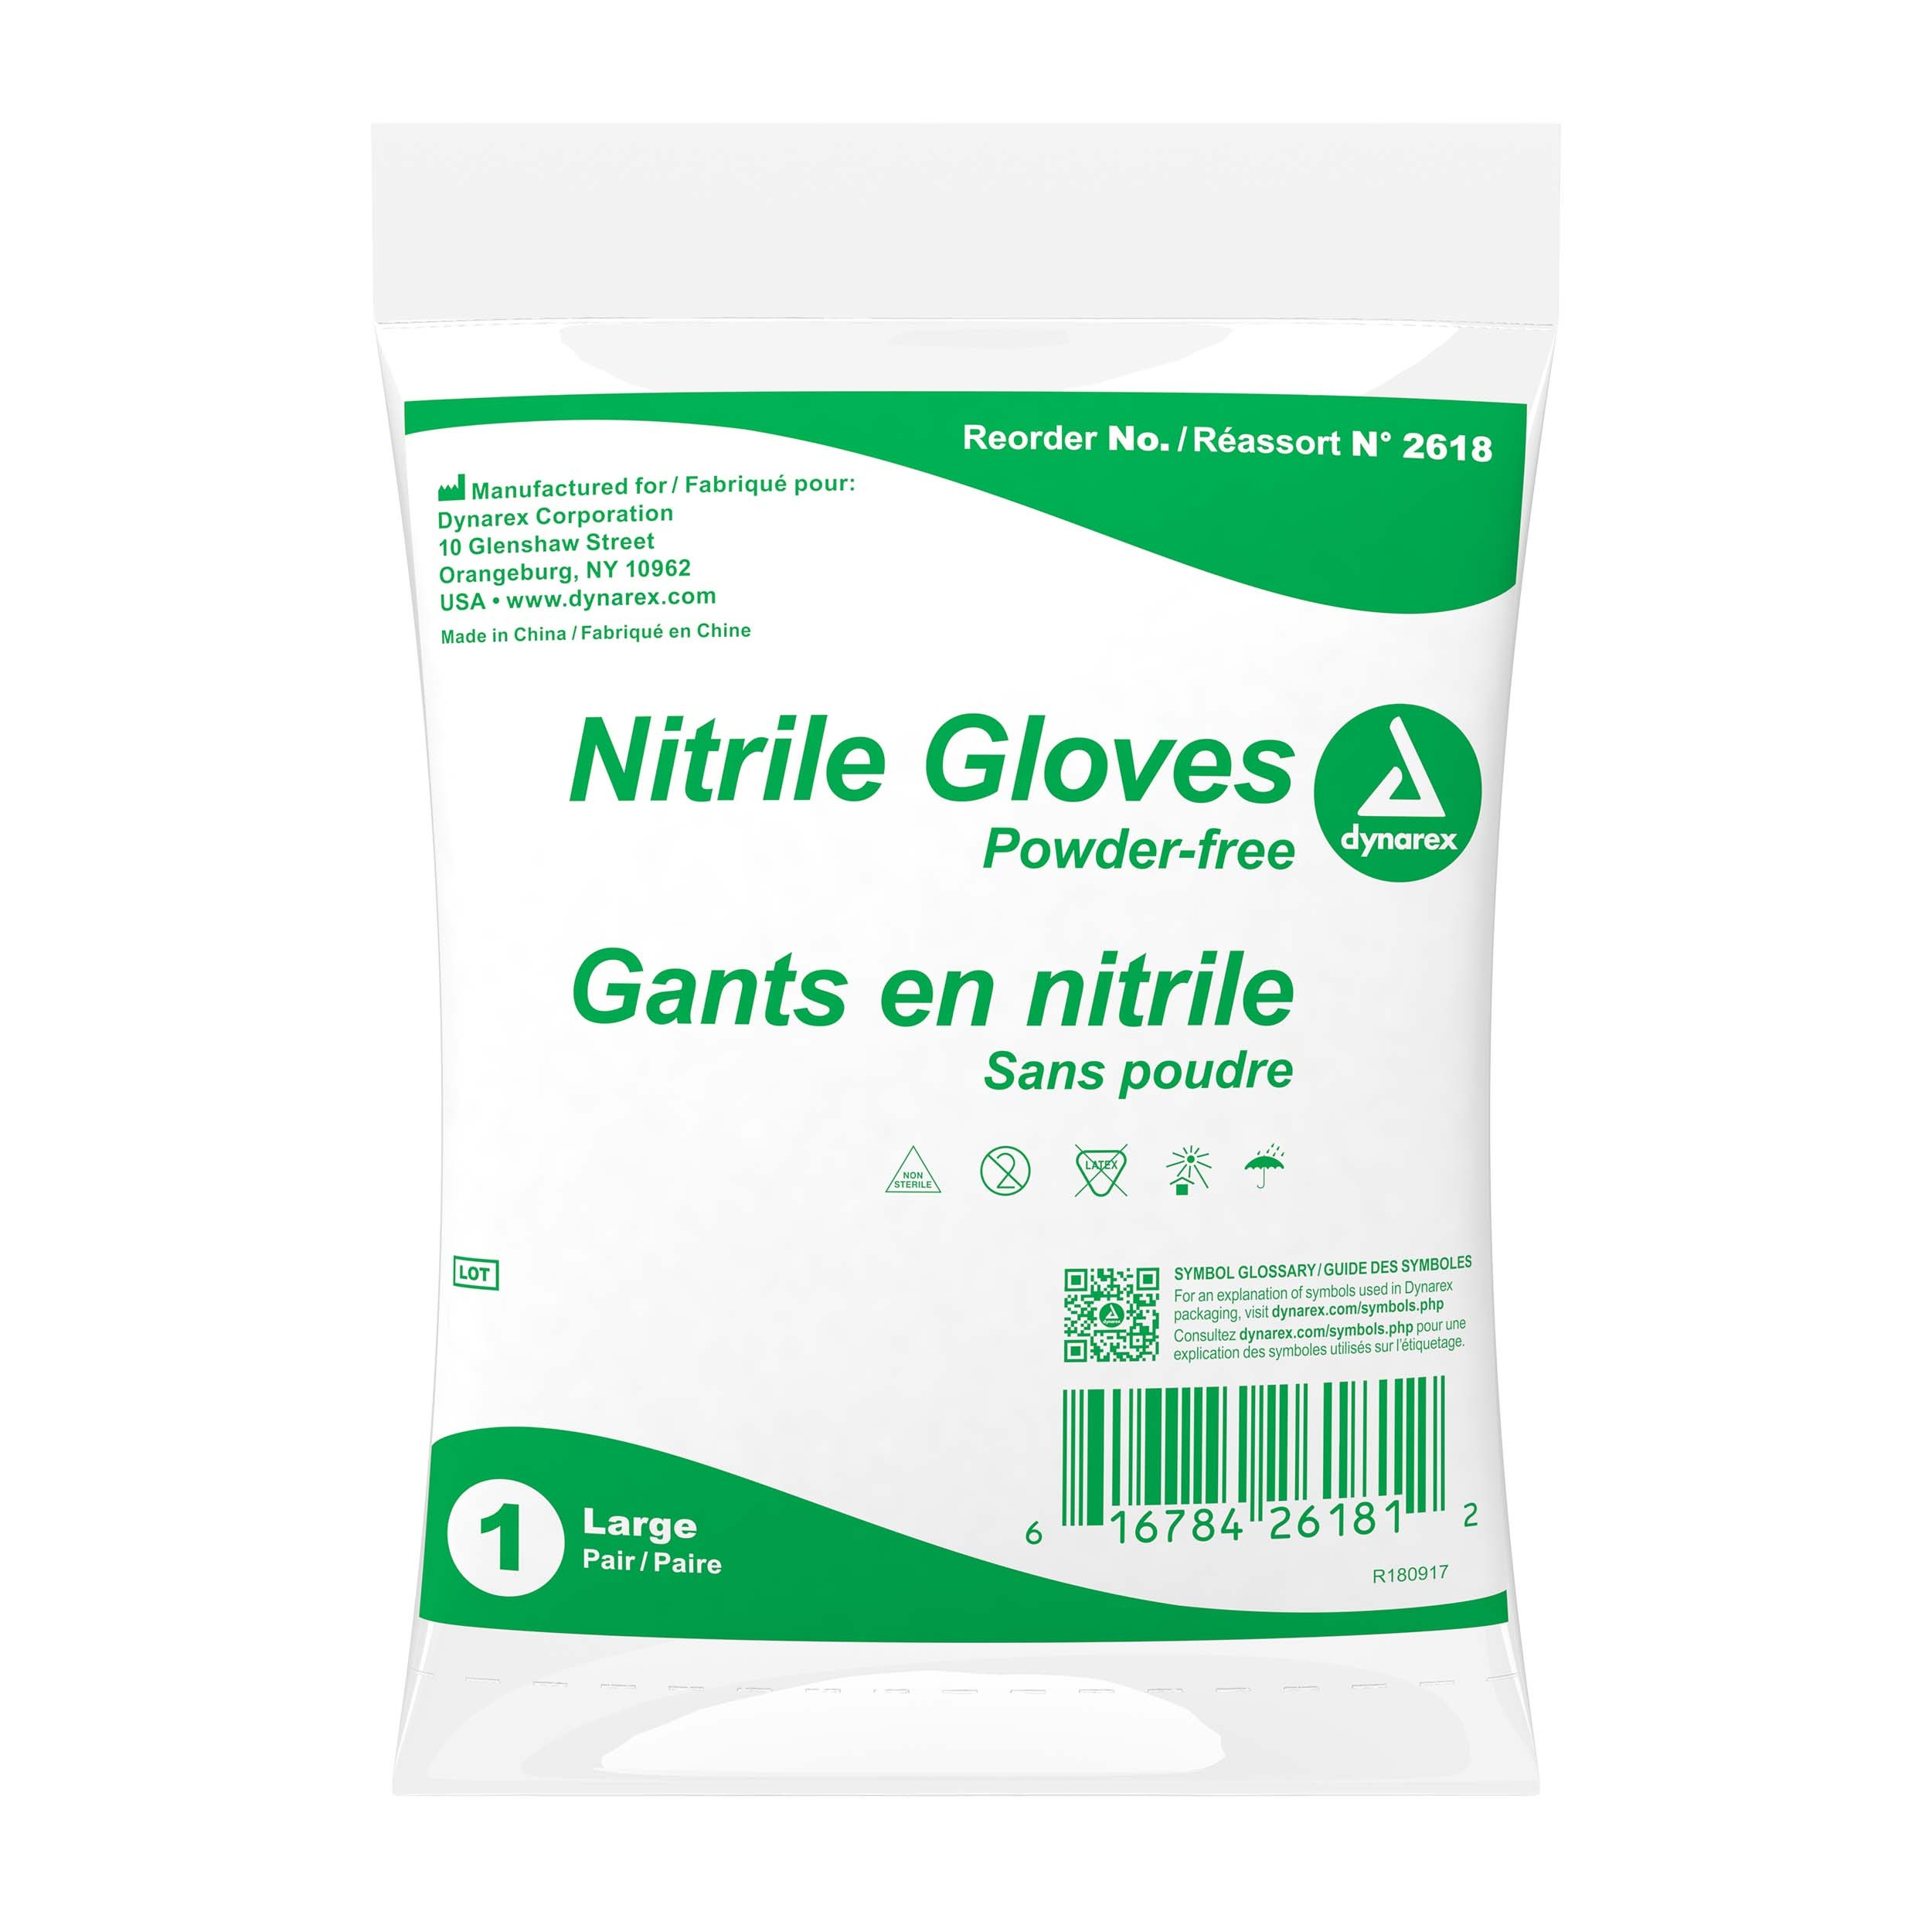 Large Powder-Free Nitrile Gloves, 1 pair per bag